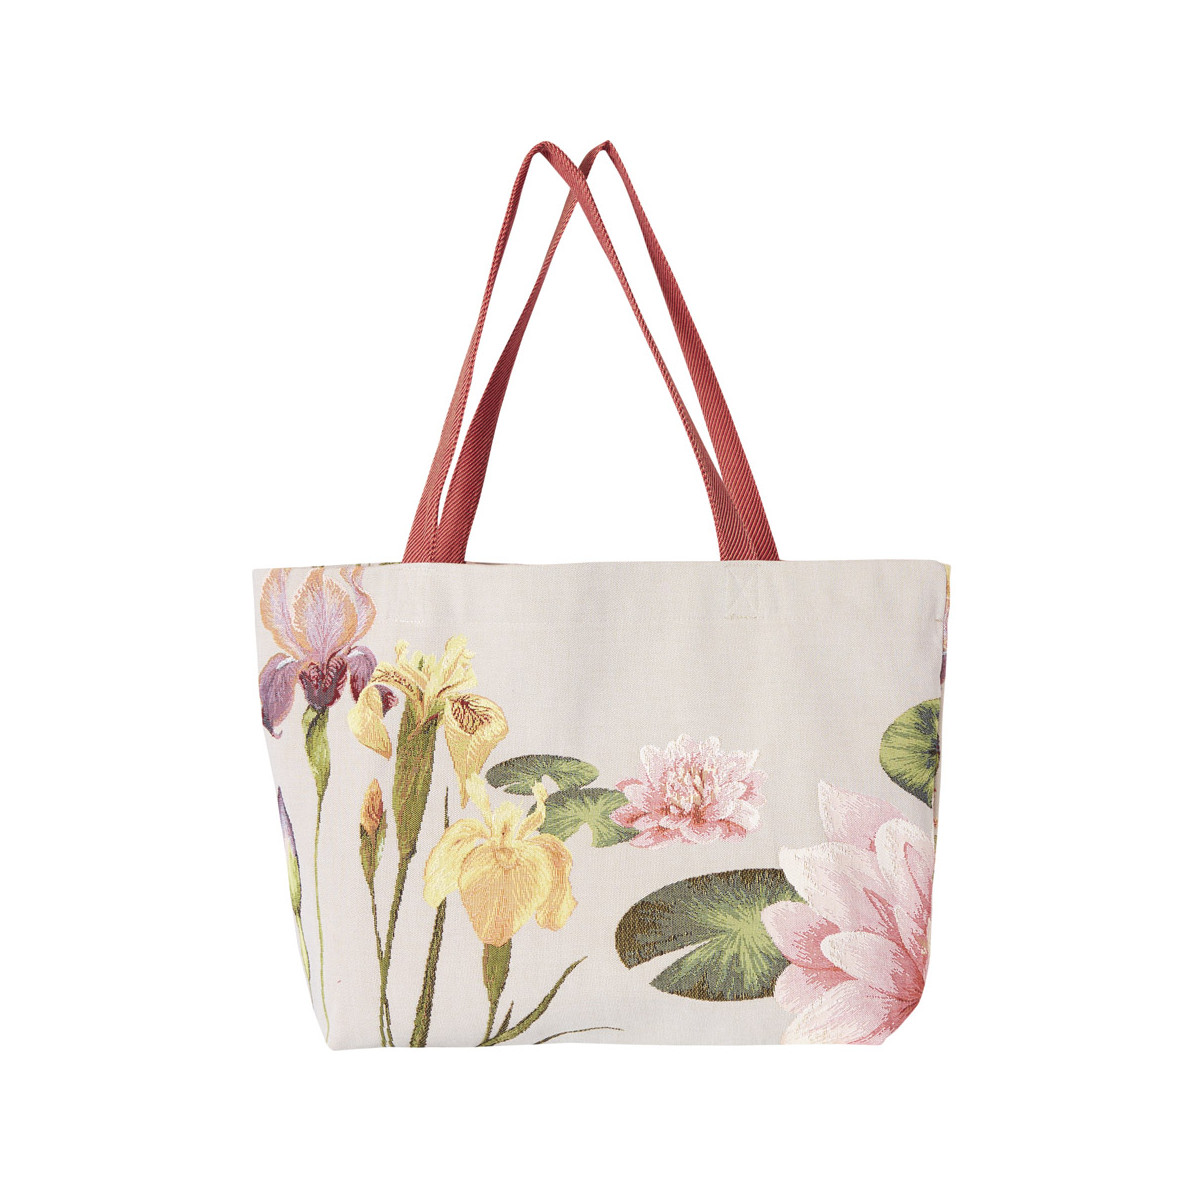 Sac cabas tapisserie giverny gris